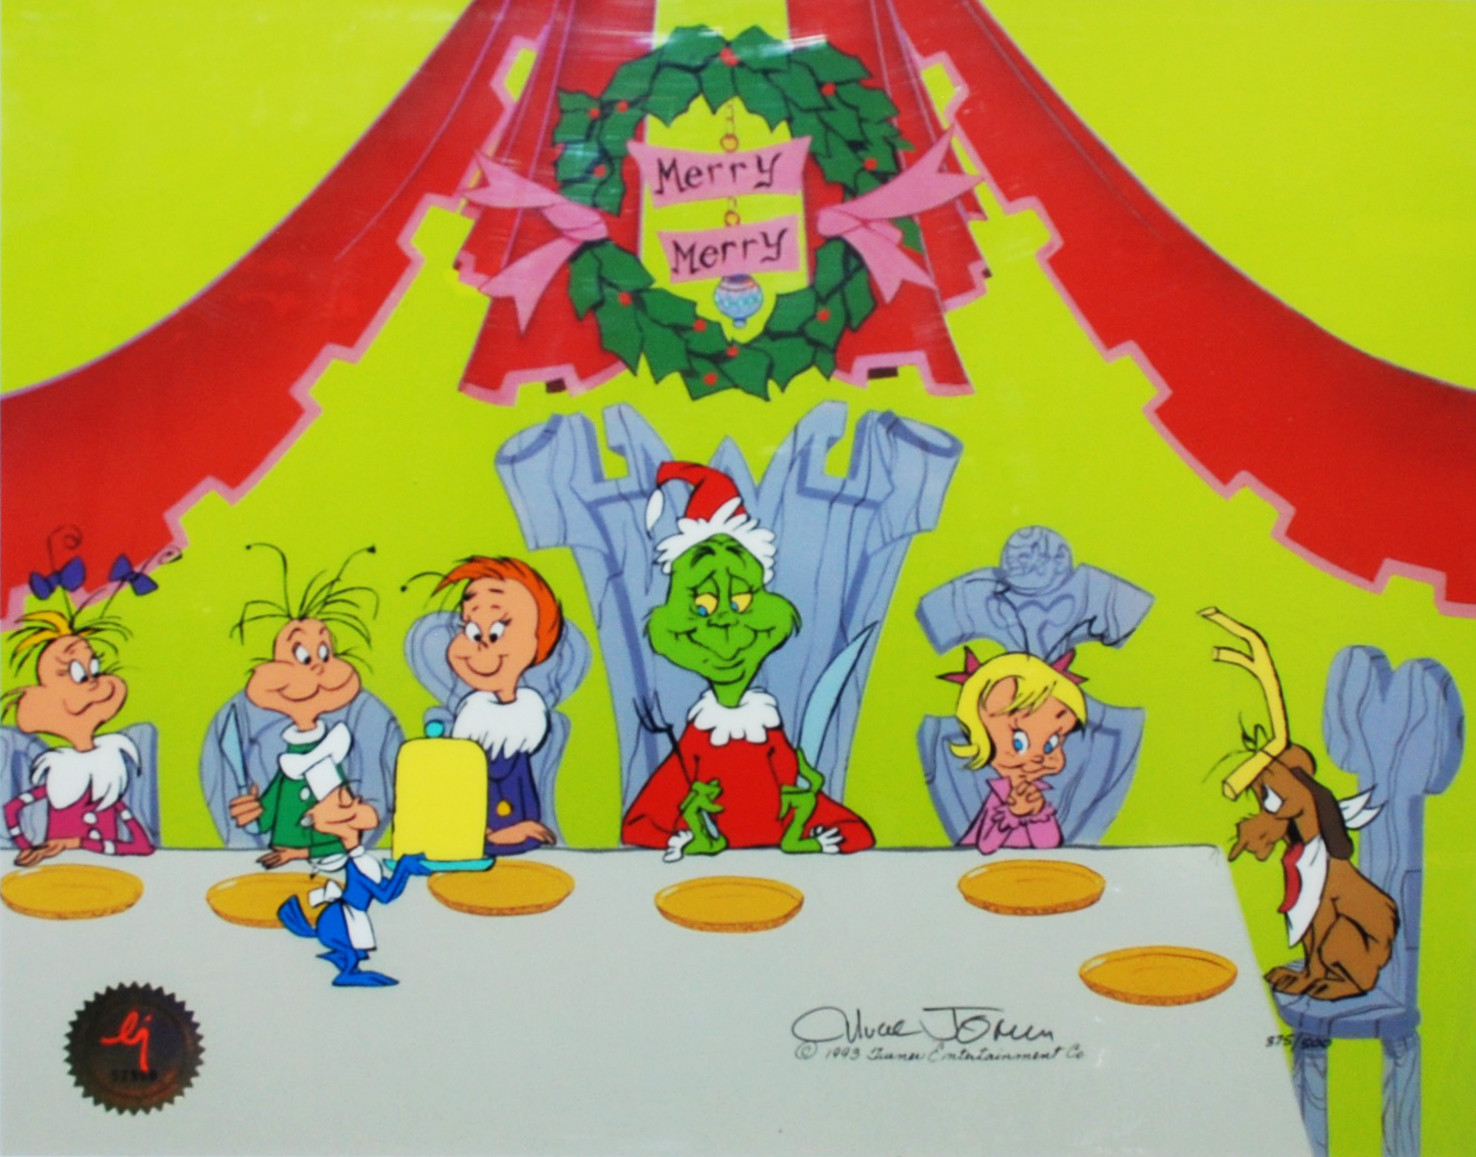 How the Grinch Stole Christmas 2000 film  Wikipedia